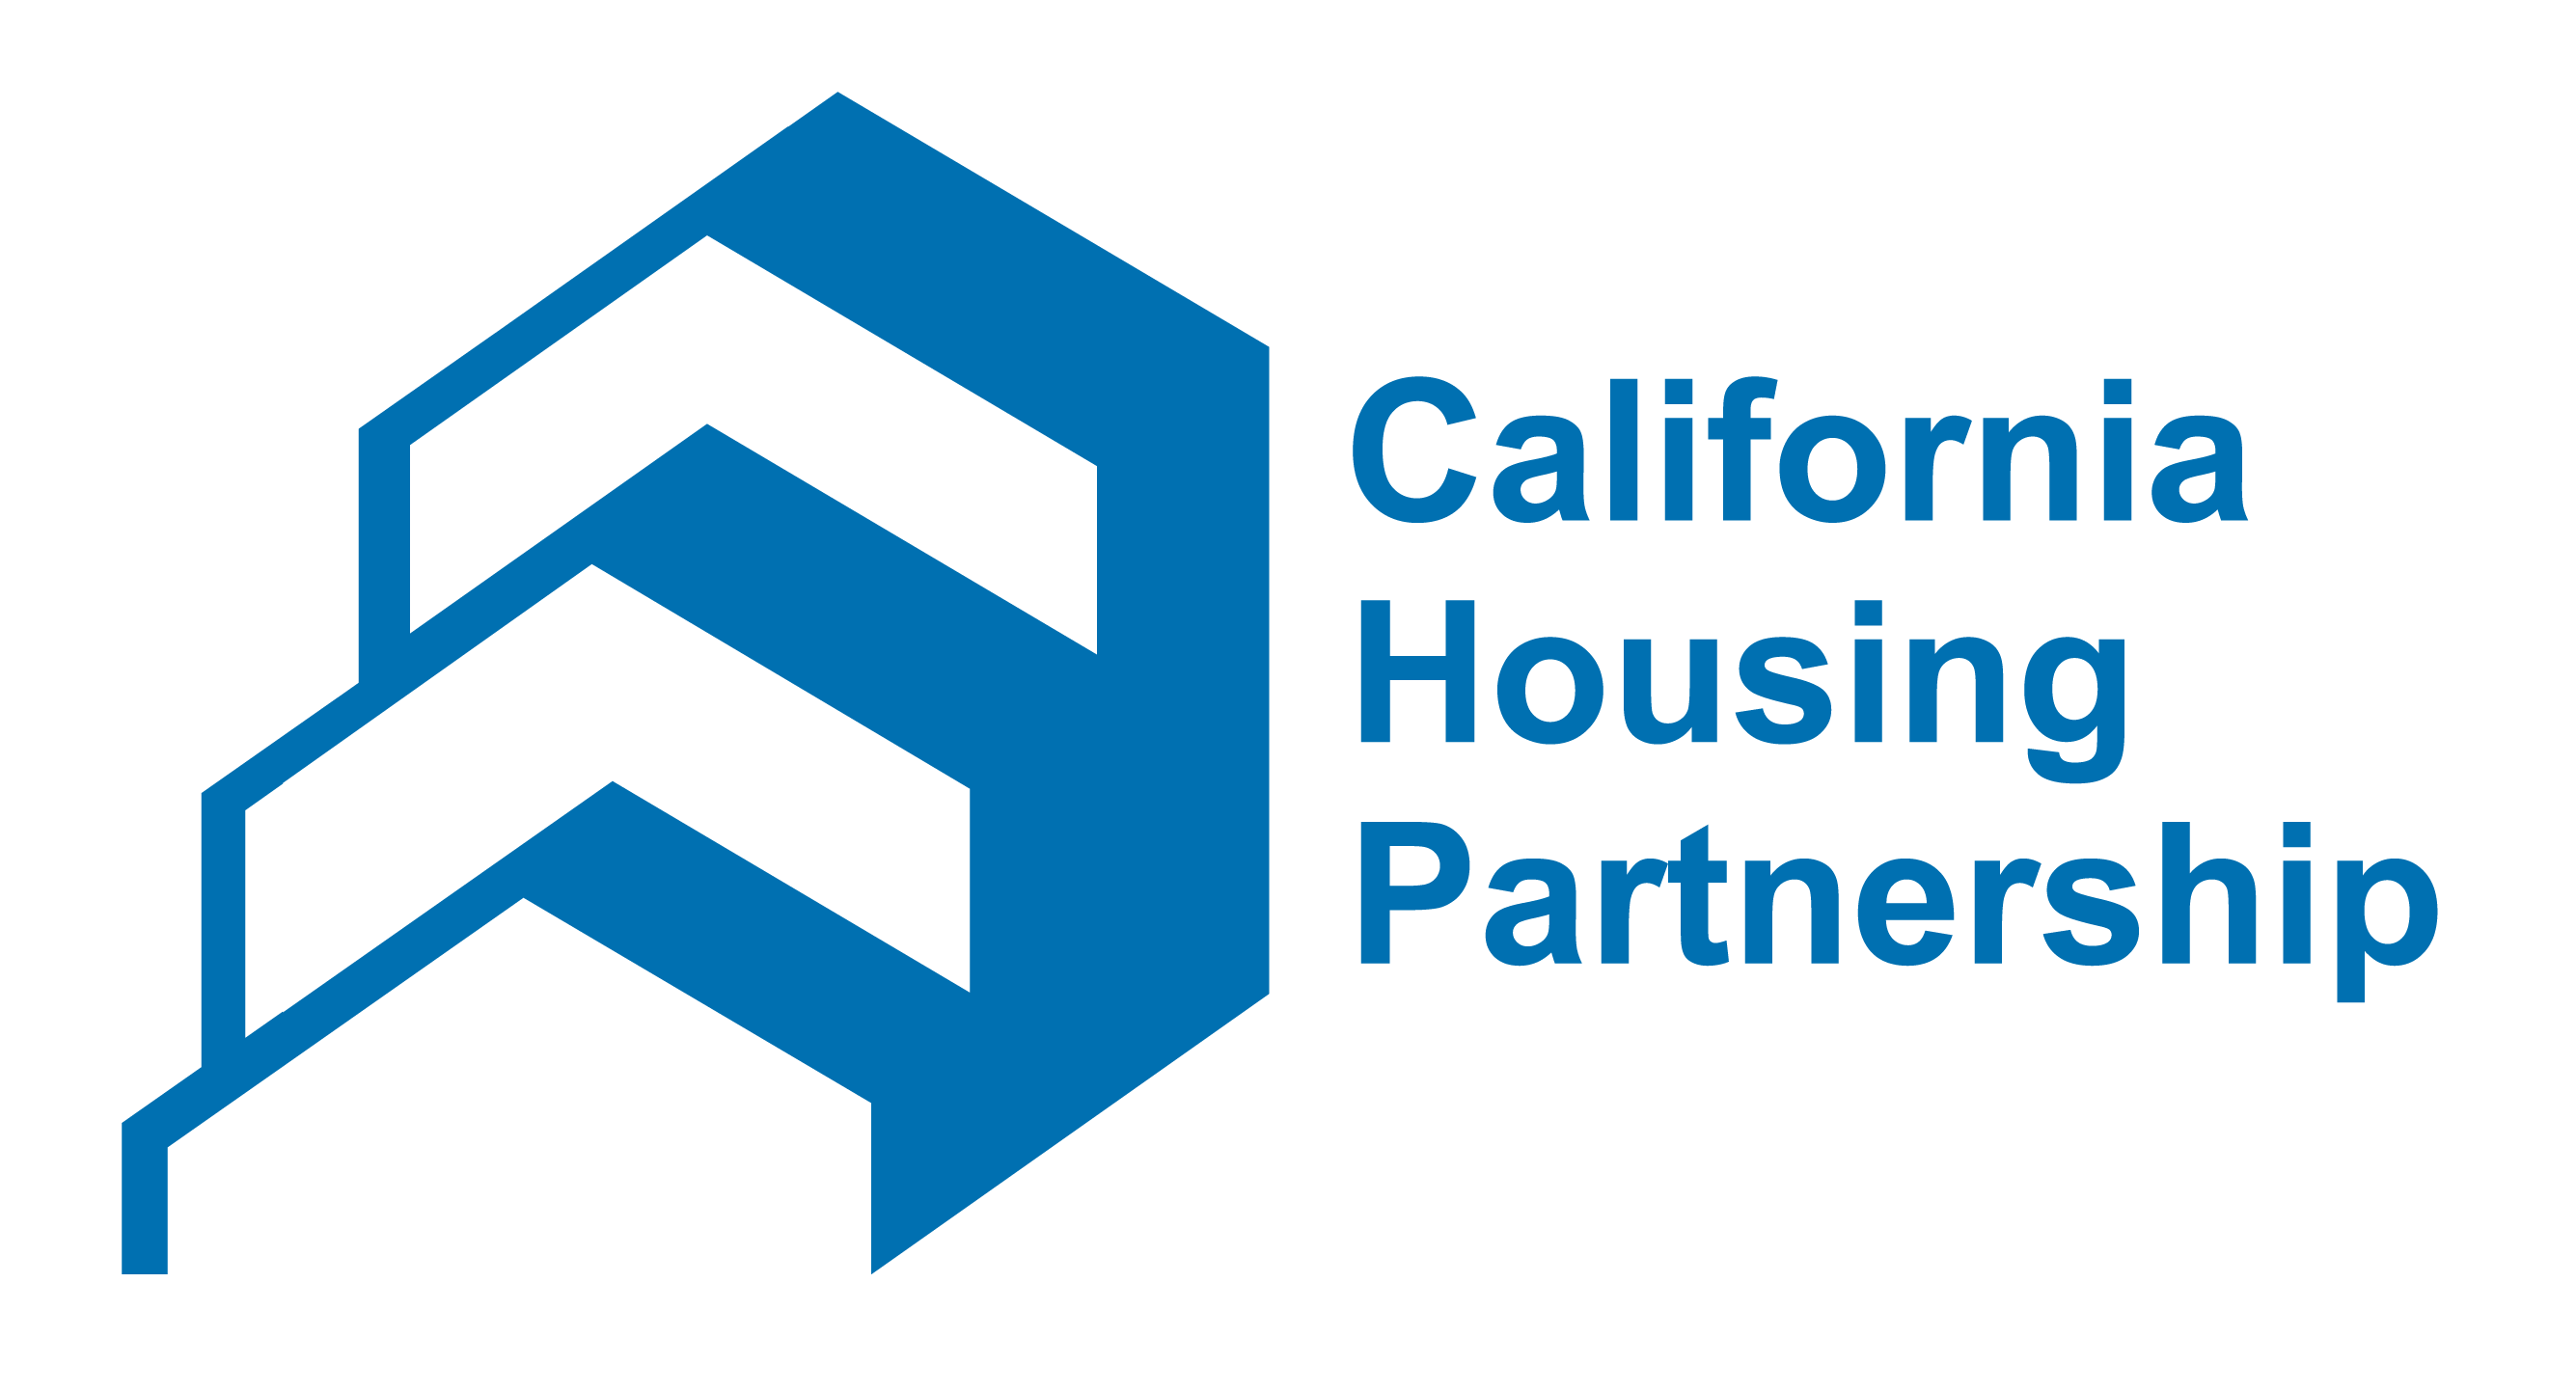 California Housing Partnership In the News - California